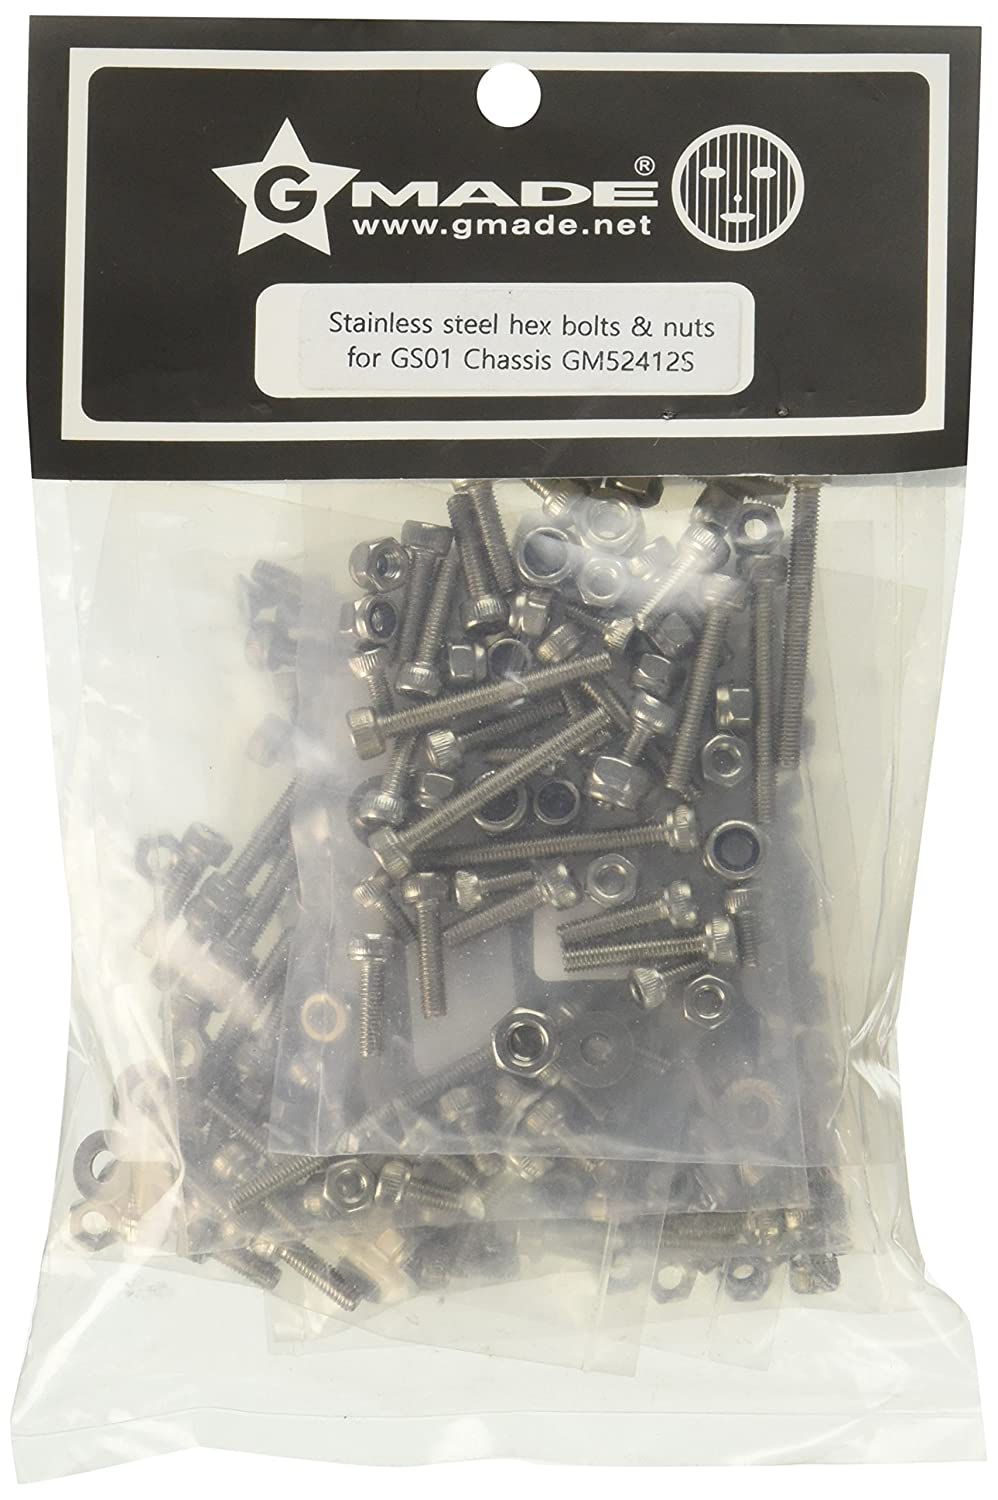 Gmade Stainless Steel Hex Bolts Model Kit HRP Distribution GMA52412S